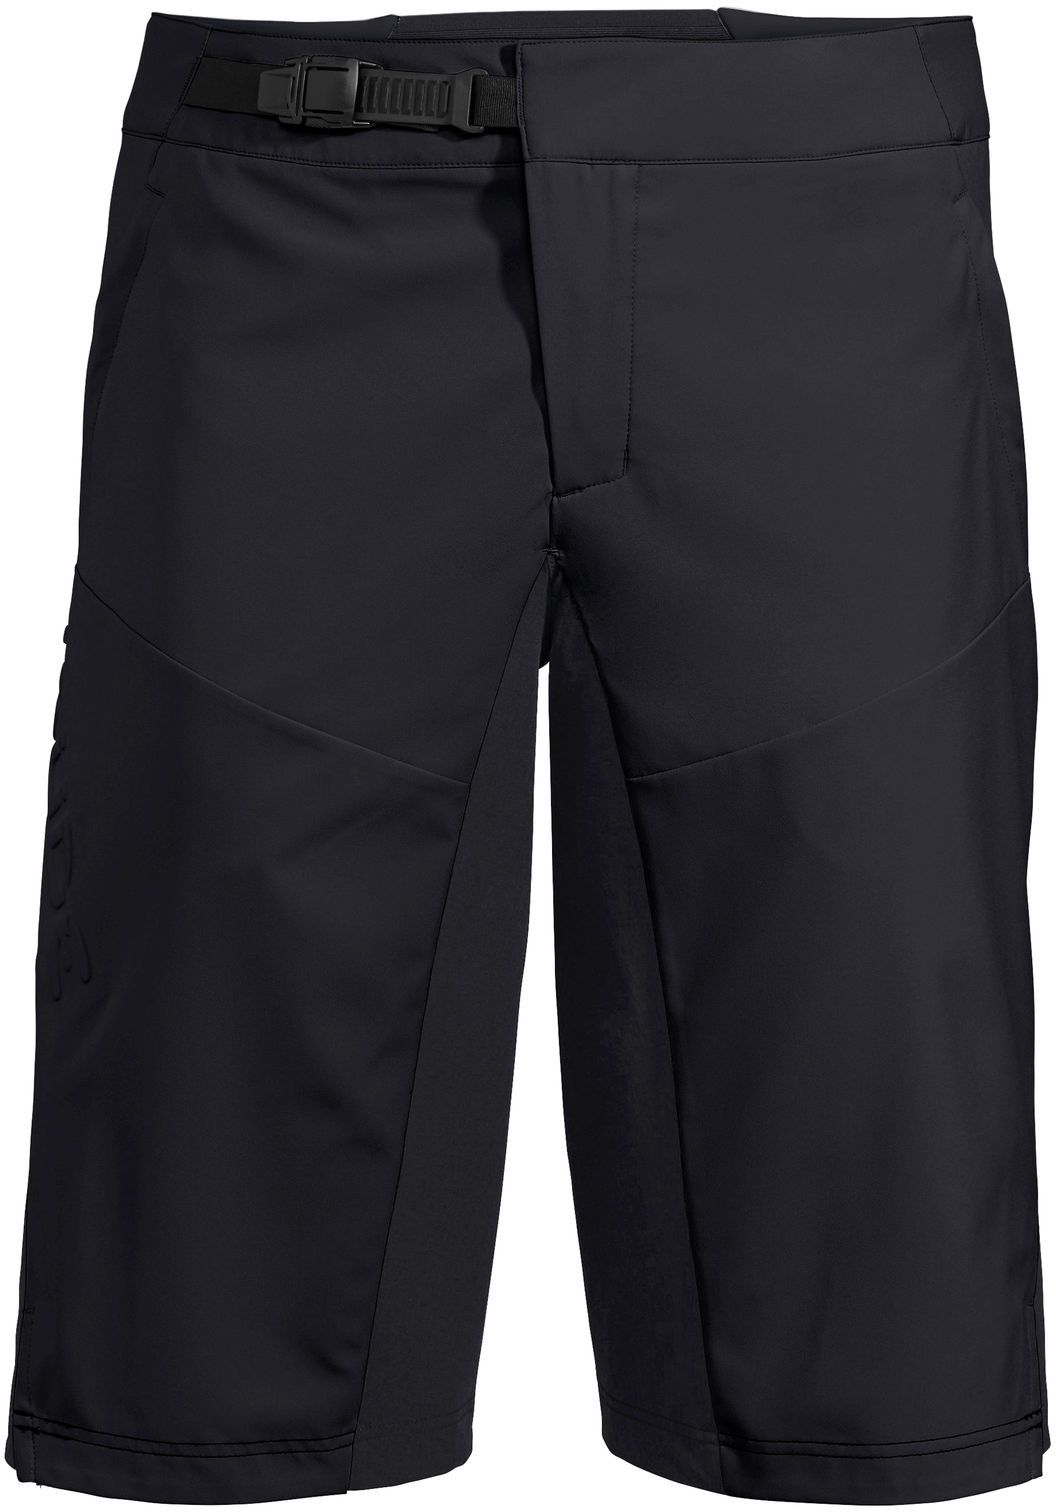 Vaude Men's Bracket Shorts - black L